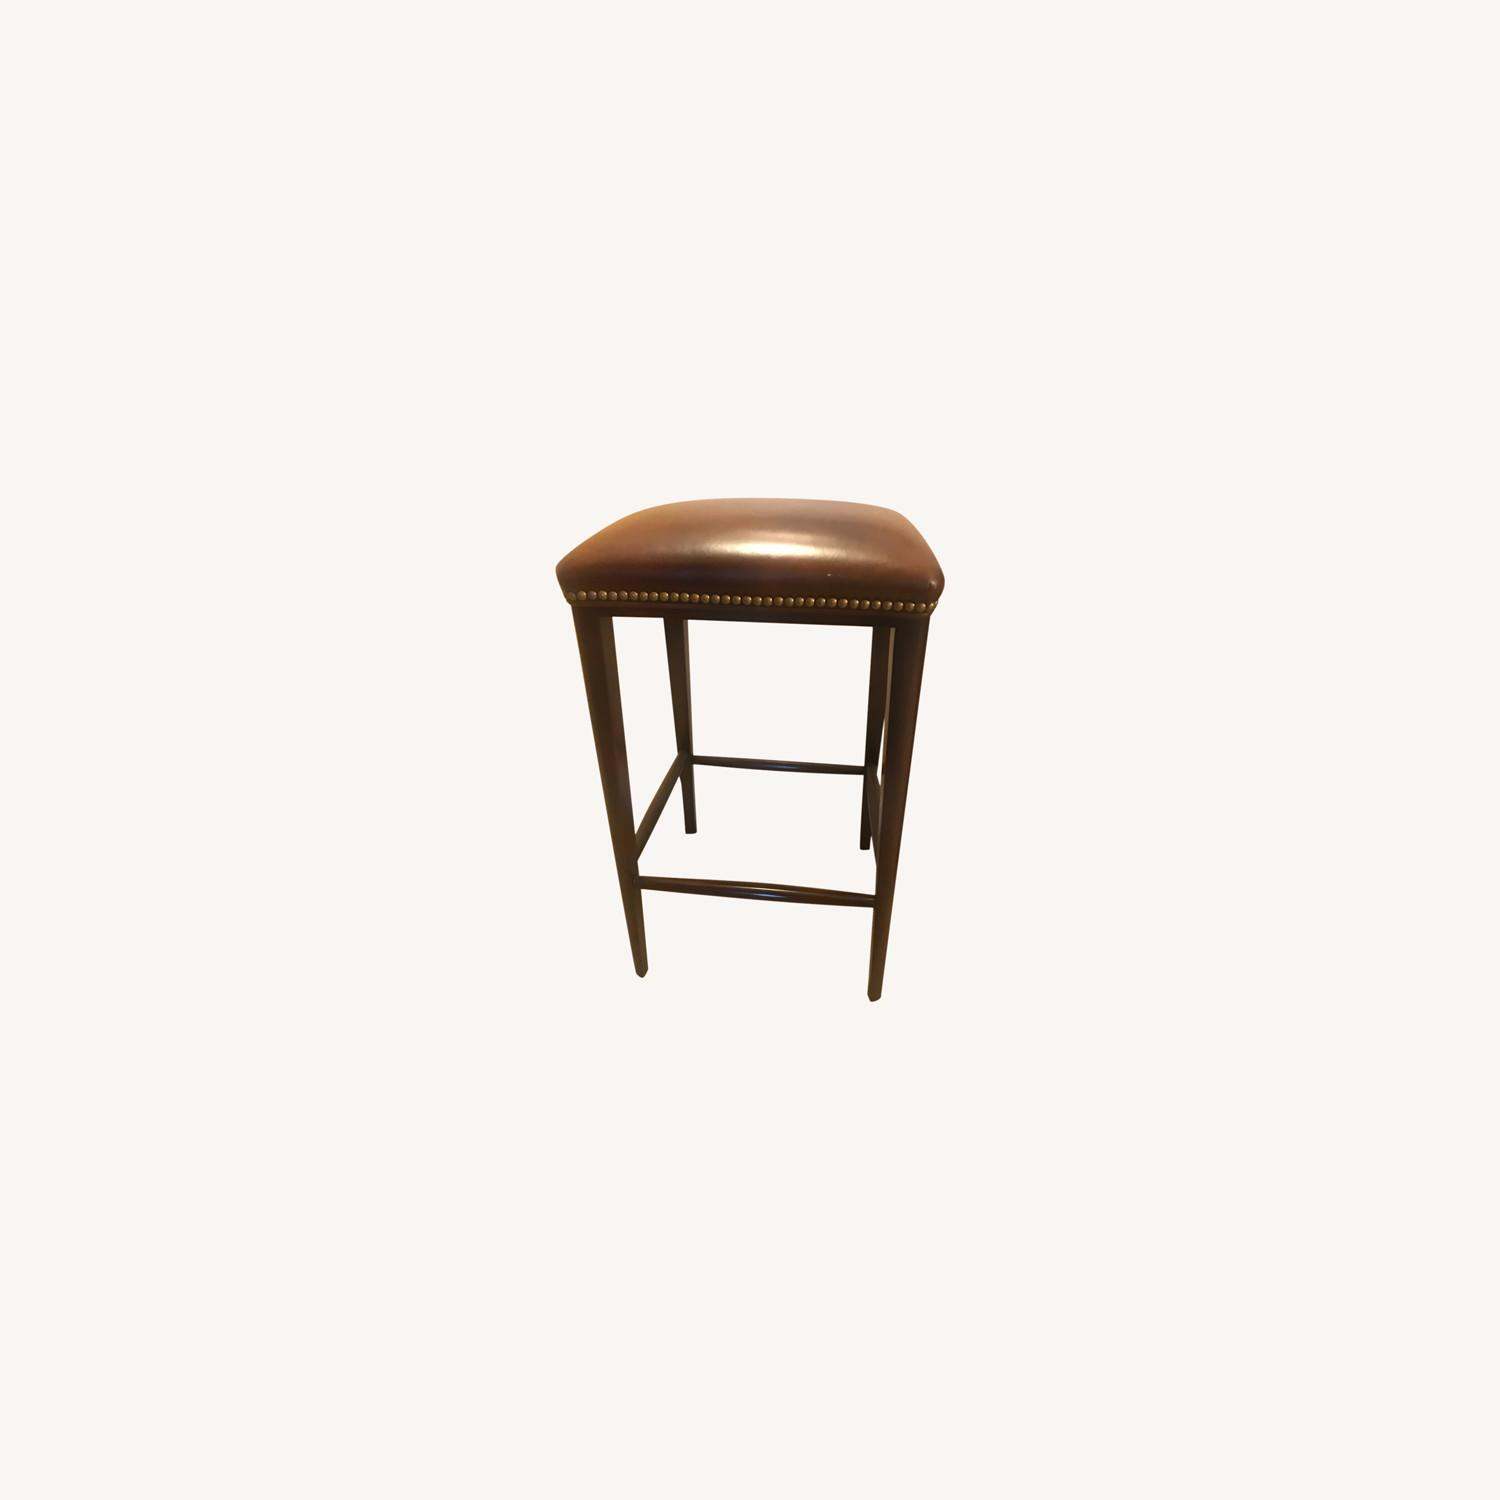 Scully & Scully Leather Bar Stool - image-0